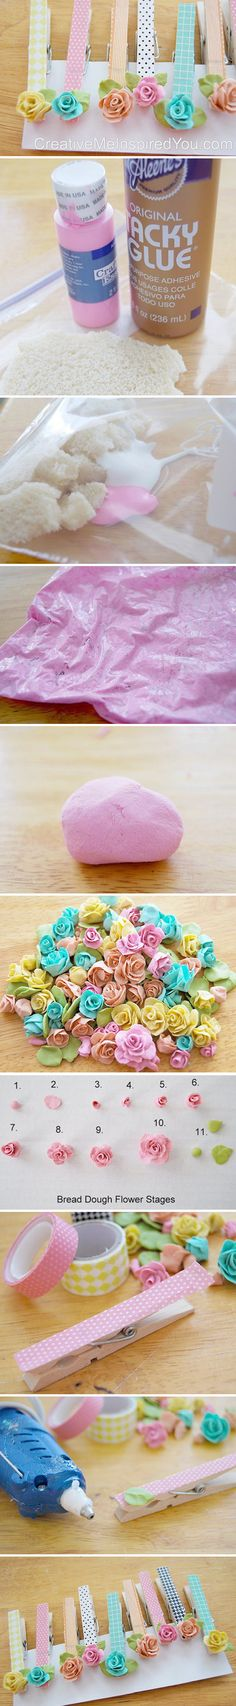 Bread Dough Roses - my sister use to make these.